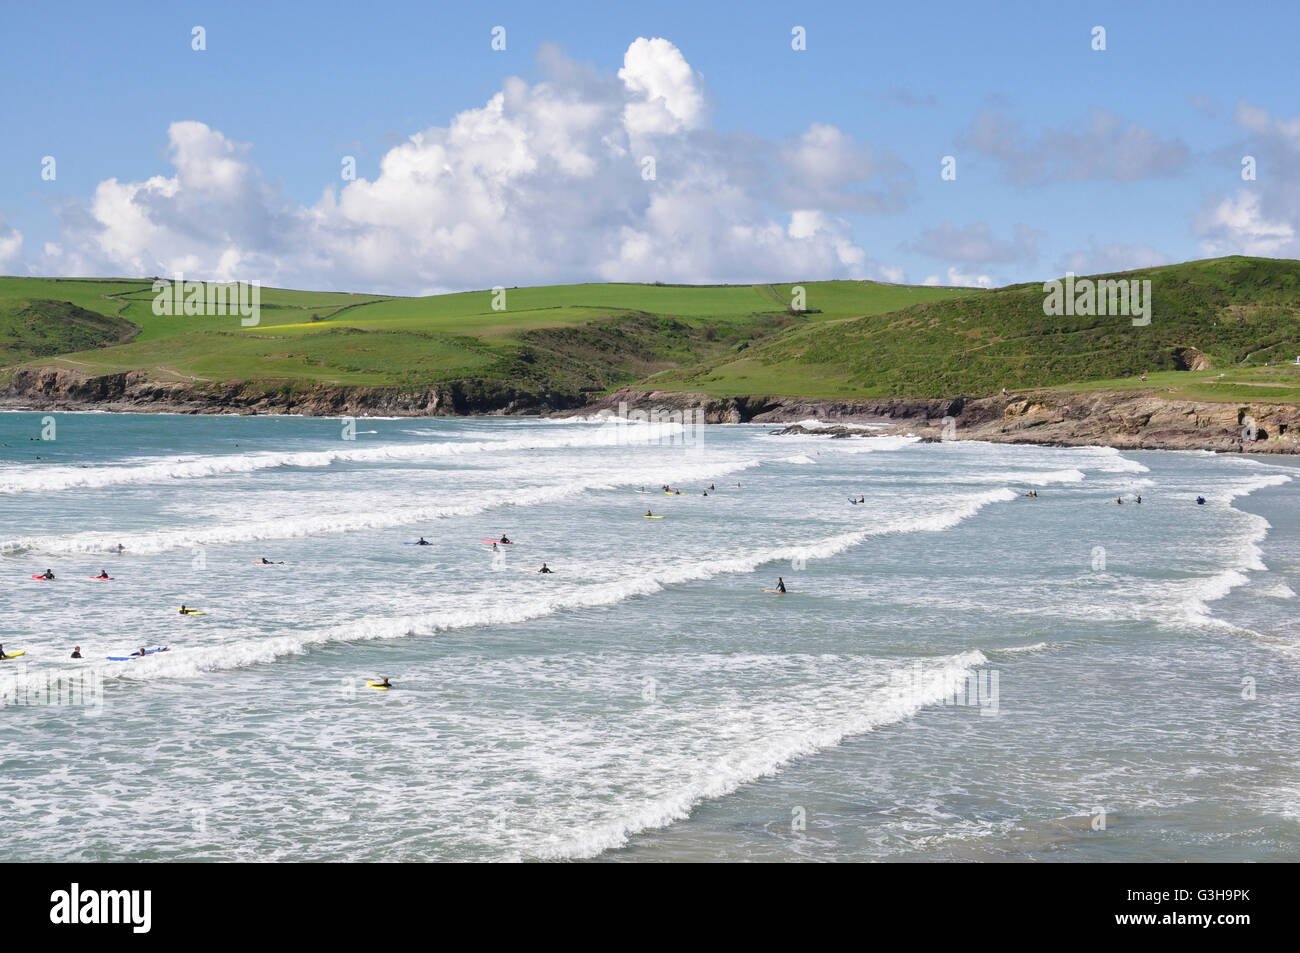 Cornwall - Polzeath beach - white capped rollers - surfers - backdrop Pentire head - blue sea and sky bright summer - Stock Image